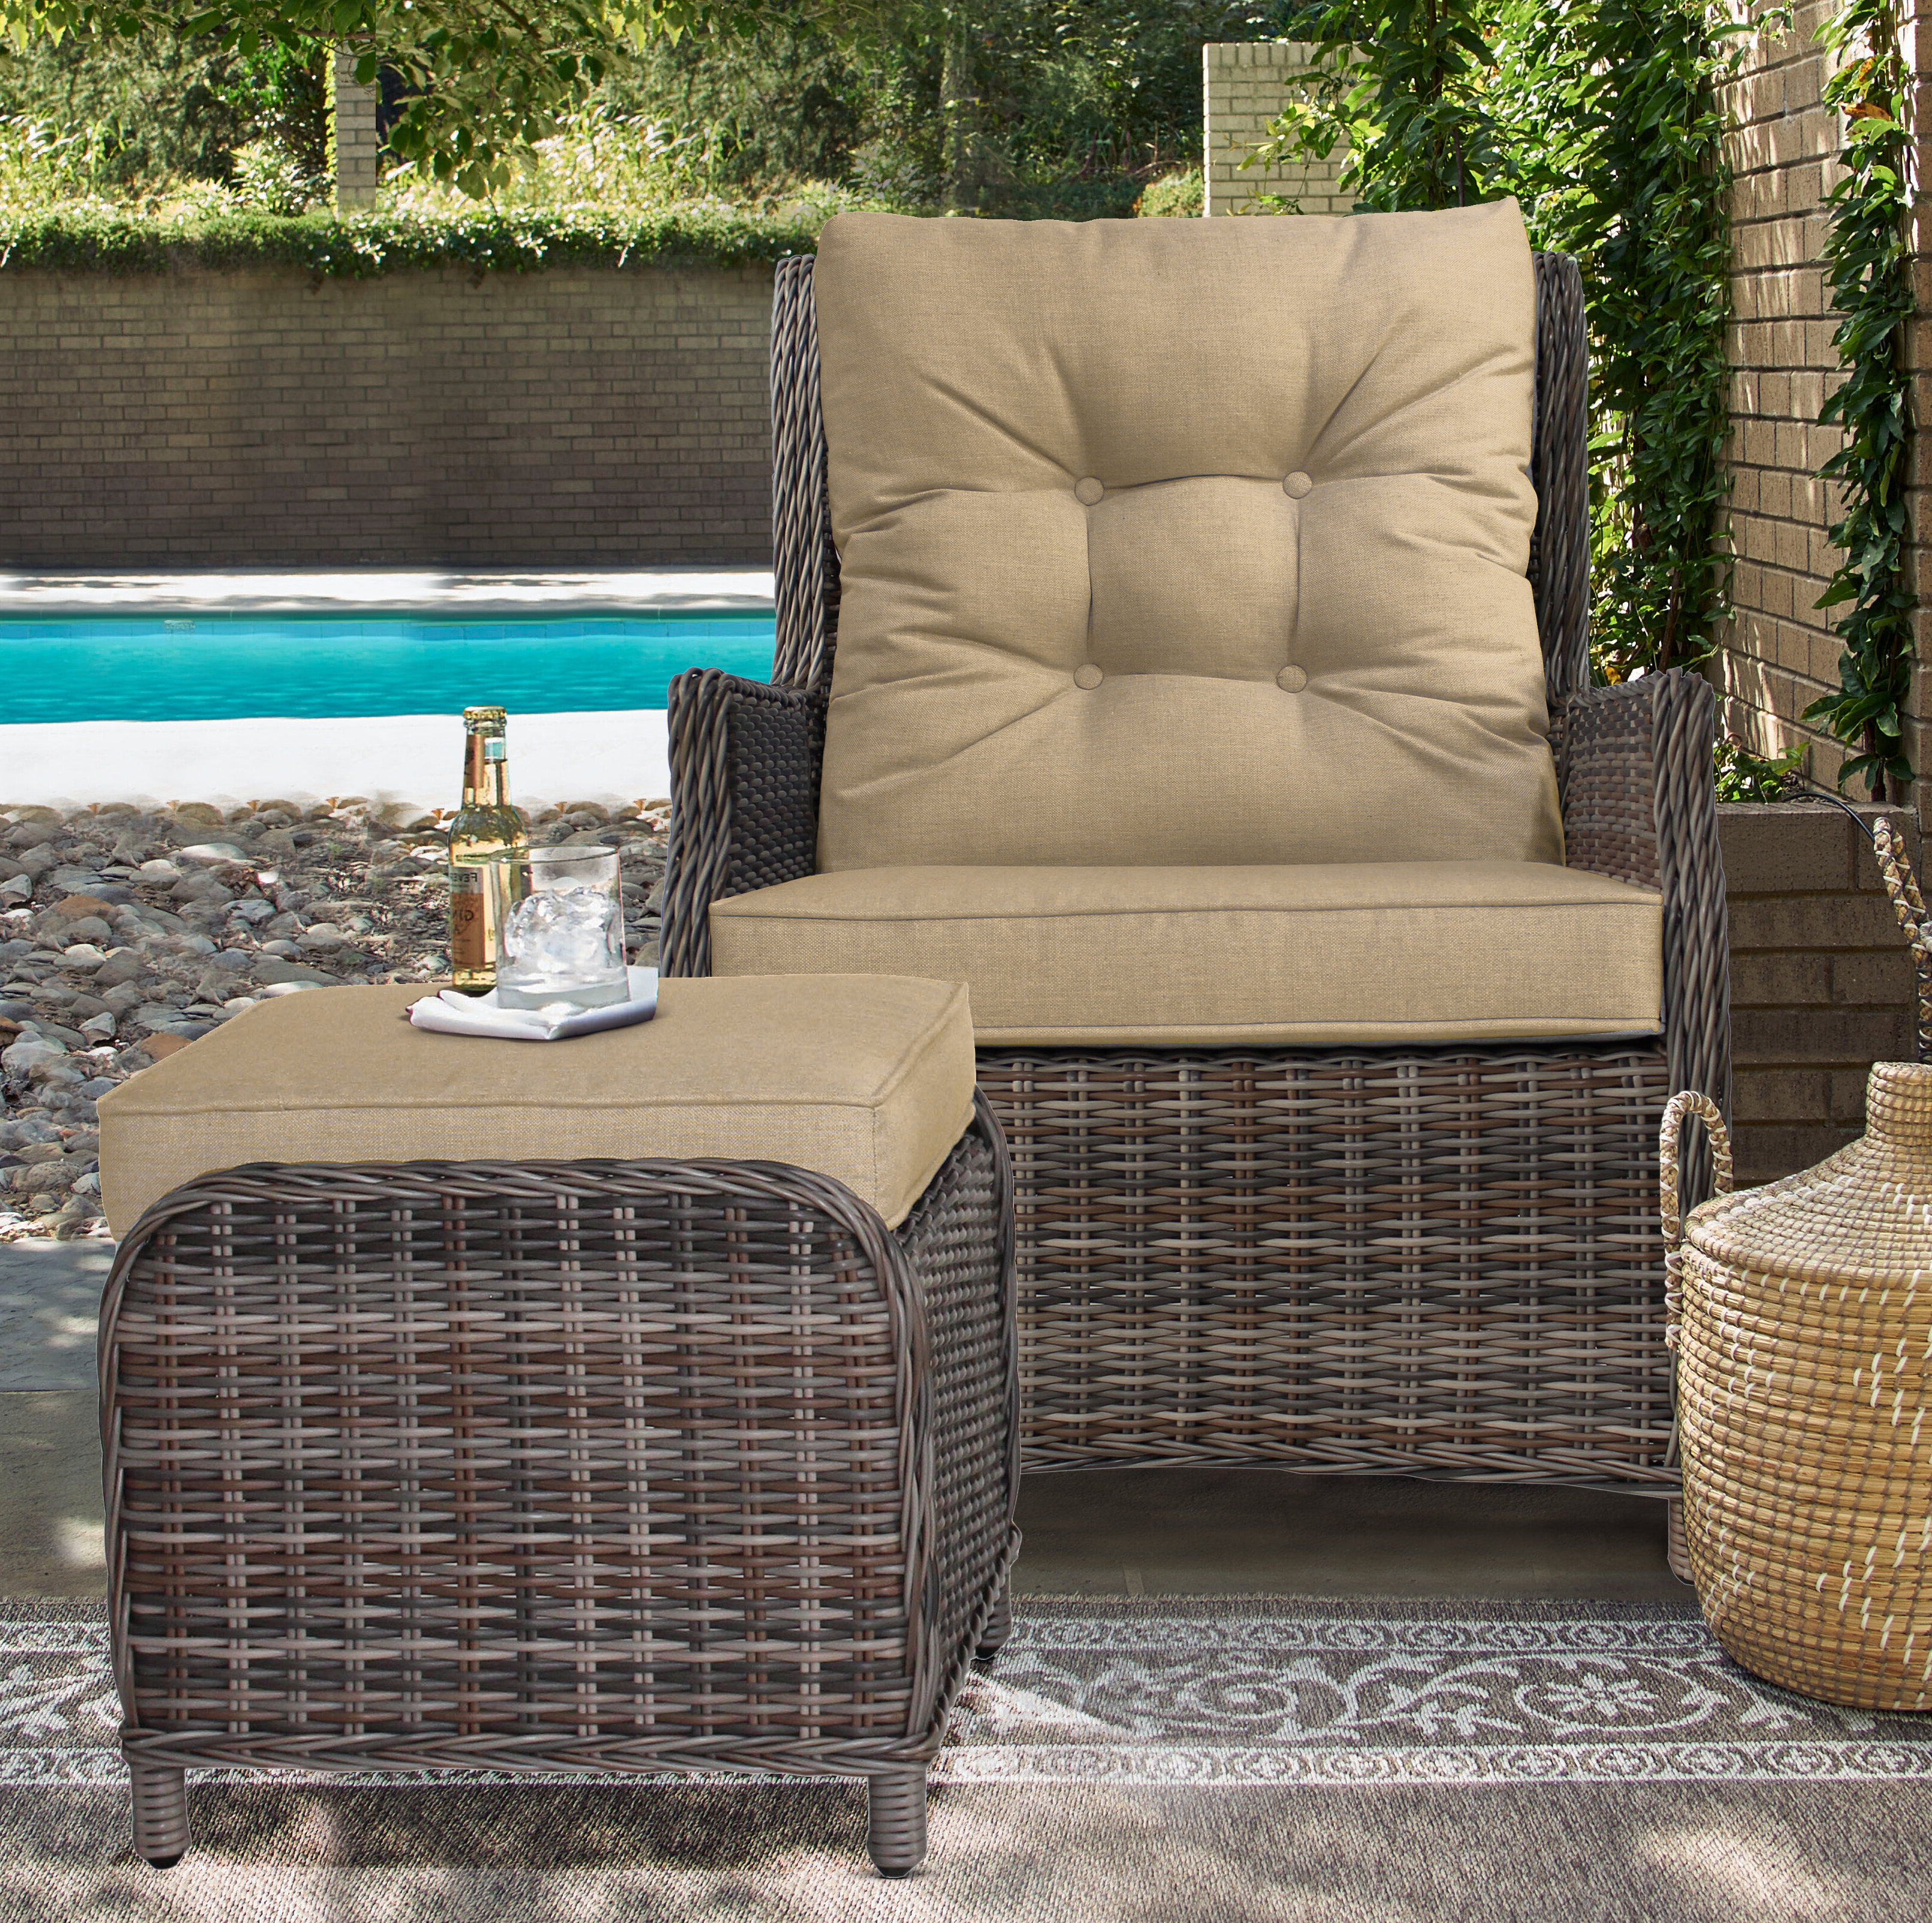 Well Liked Avadi Outdoor Sofas & Ottomans 3 Piece Set Regarding Darby Home Co Cardoza Outdoor Recliner Patio Chair With (View 25 of 25)